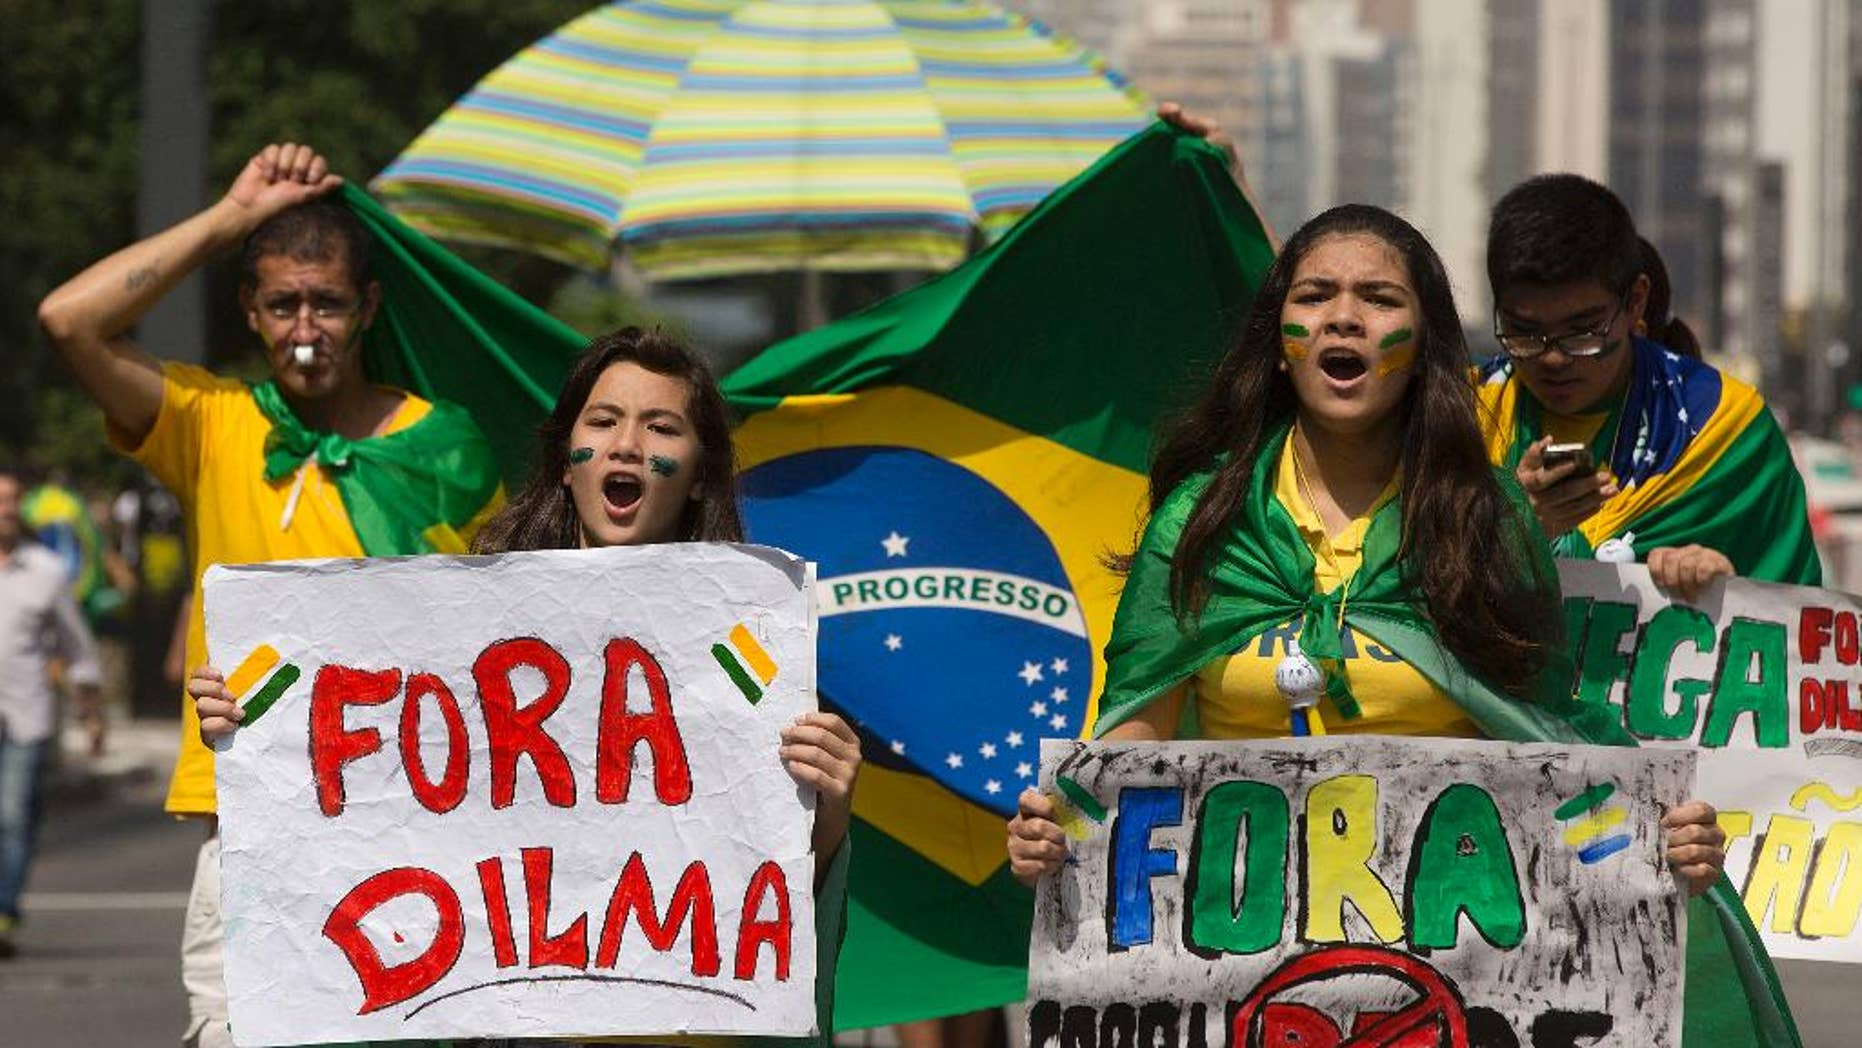 """Demonstrators shout anti-government slogans as they march holding signs that reads in Portuguese """"Dilma Out"""" and """"Corrupt Out"""", during a protest demanding the impeachment of Brazil's President Dilma Rousseff in Sao Paulo, Brazil, Sunday, April 12, 2015. It was the second such day of protests in less than a month and comes as polls show Rousseff with historically low approval ratings amid a corruption scandal at the state-run oil company, Petrobras, as well as a spluttering economy, a rapidly depreciating currency and political infighting. (AP Photo/Andre Penner)"""